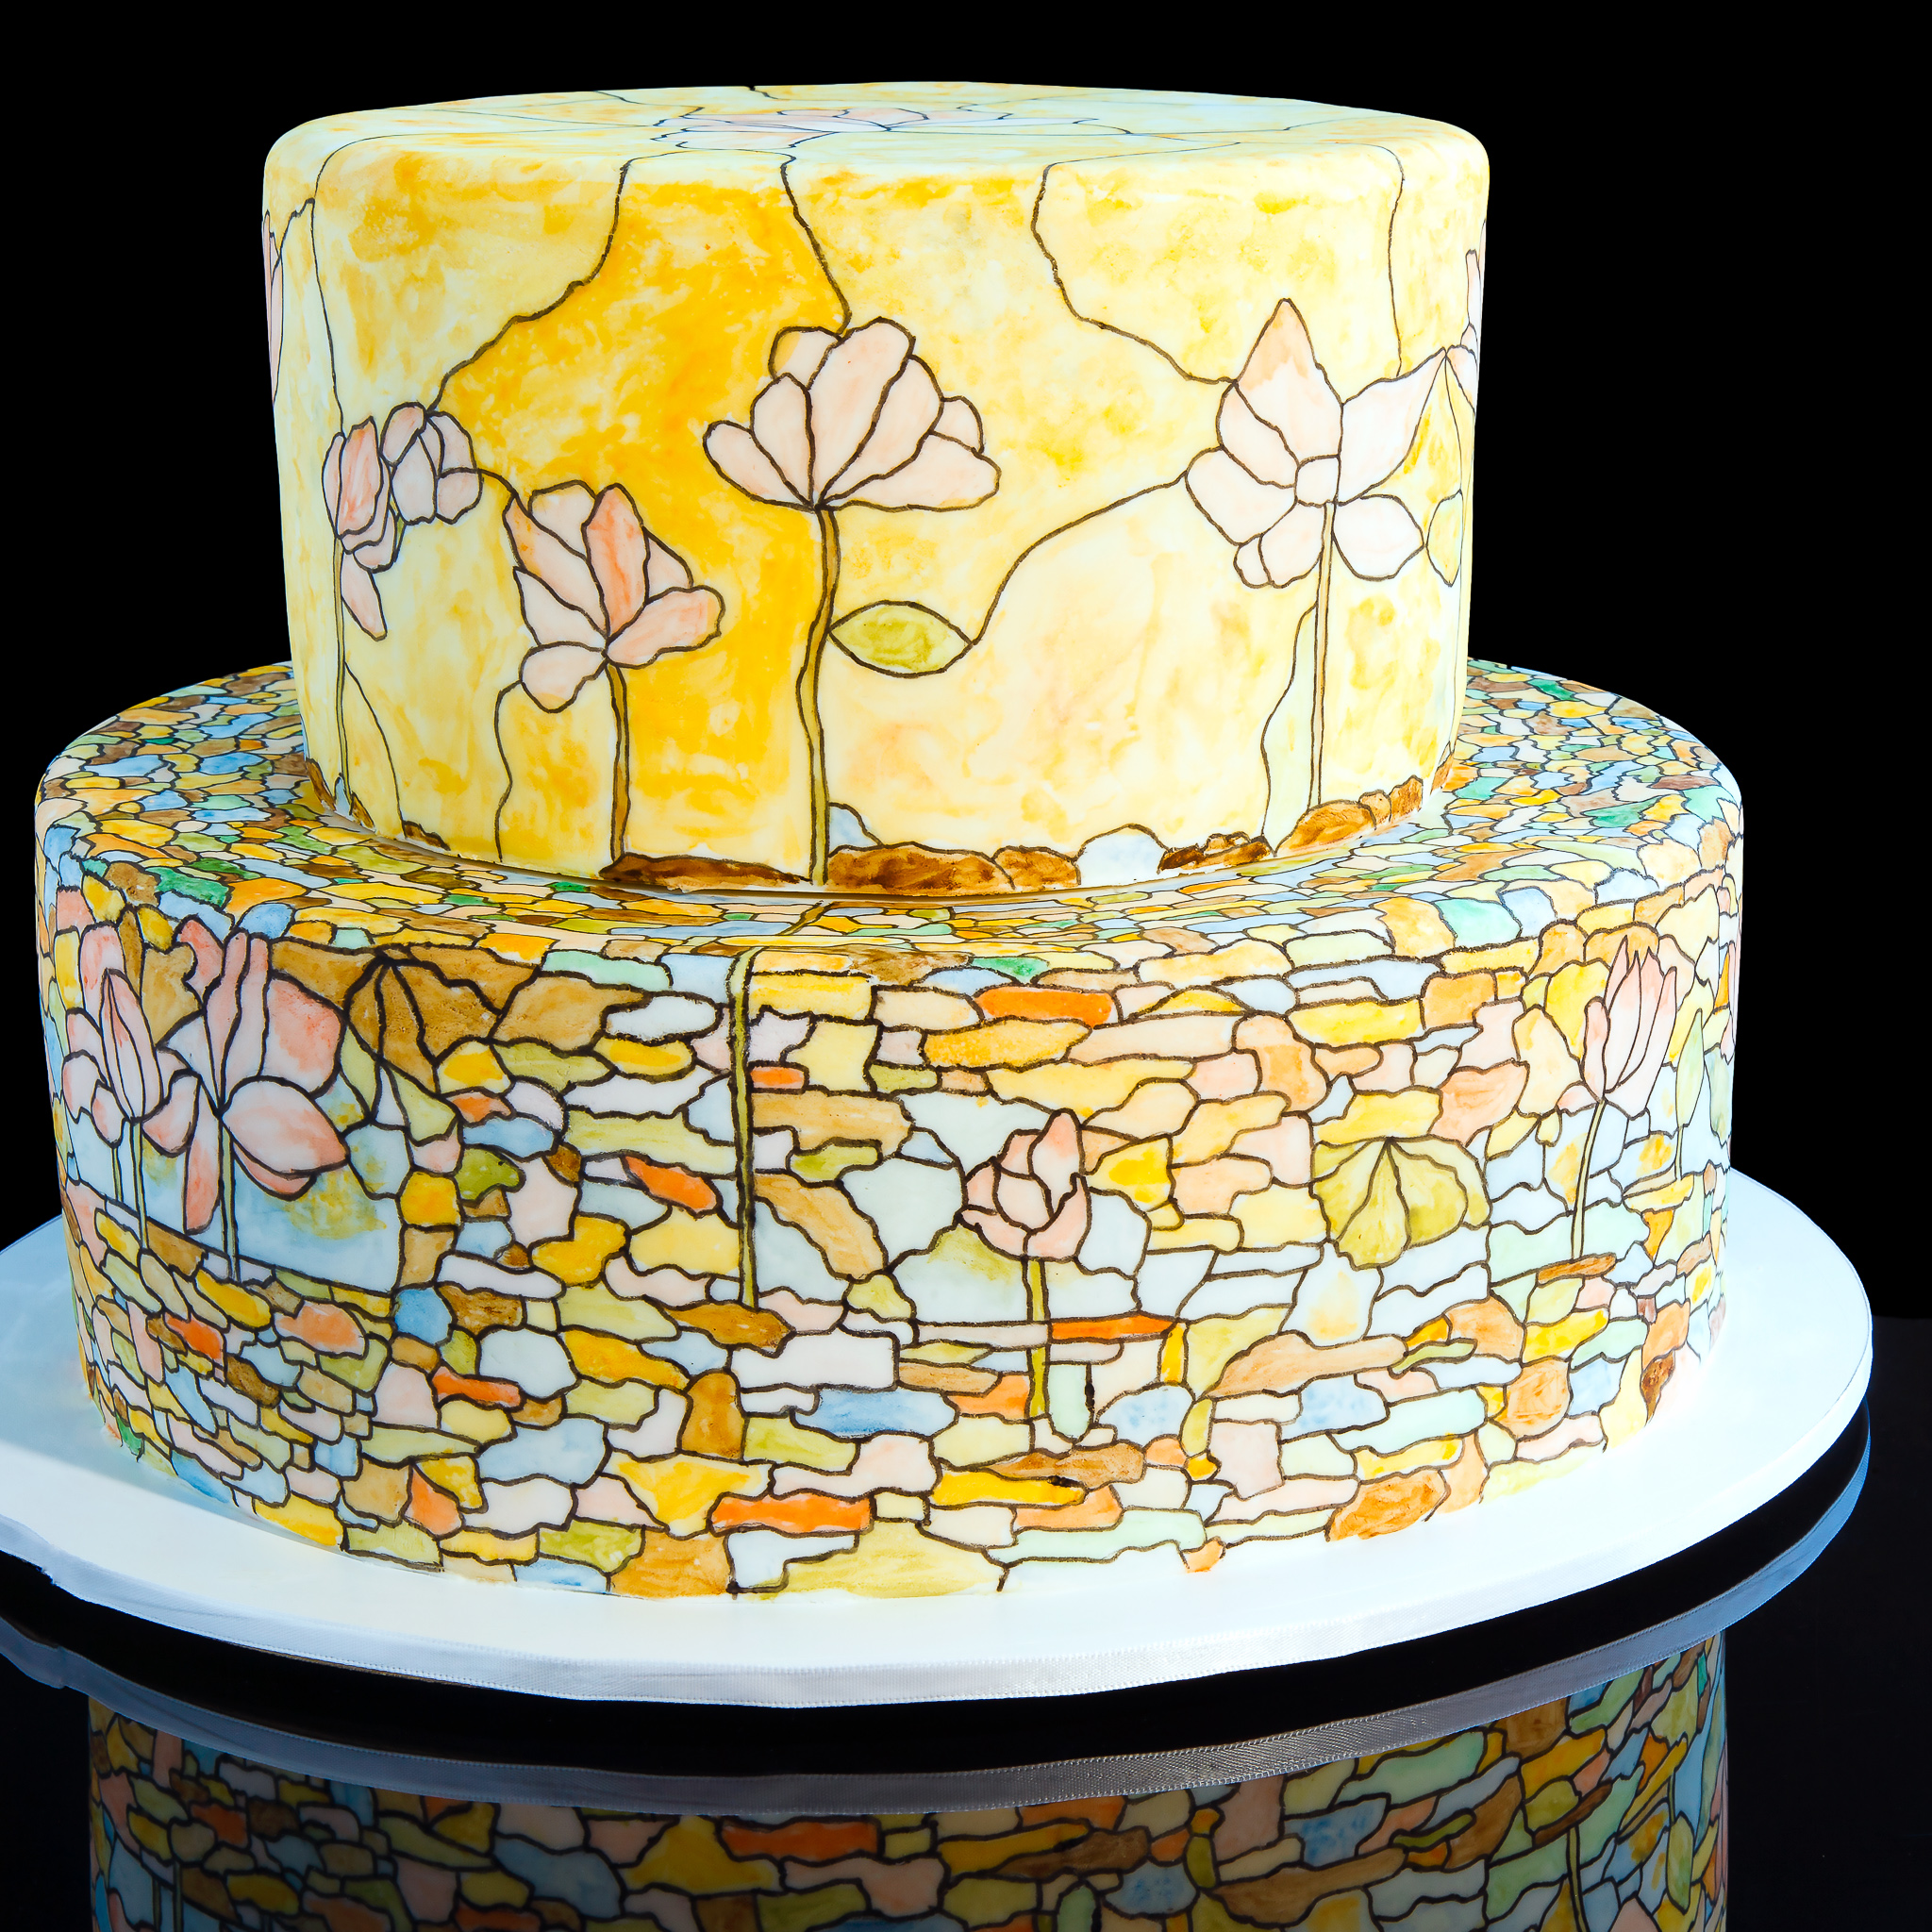 Copy of two tier round hand painted rolled fondant stained glass wedding cake